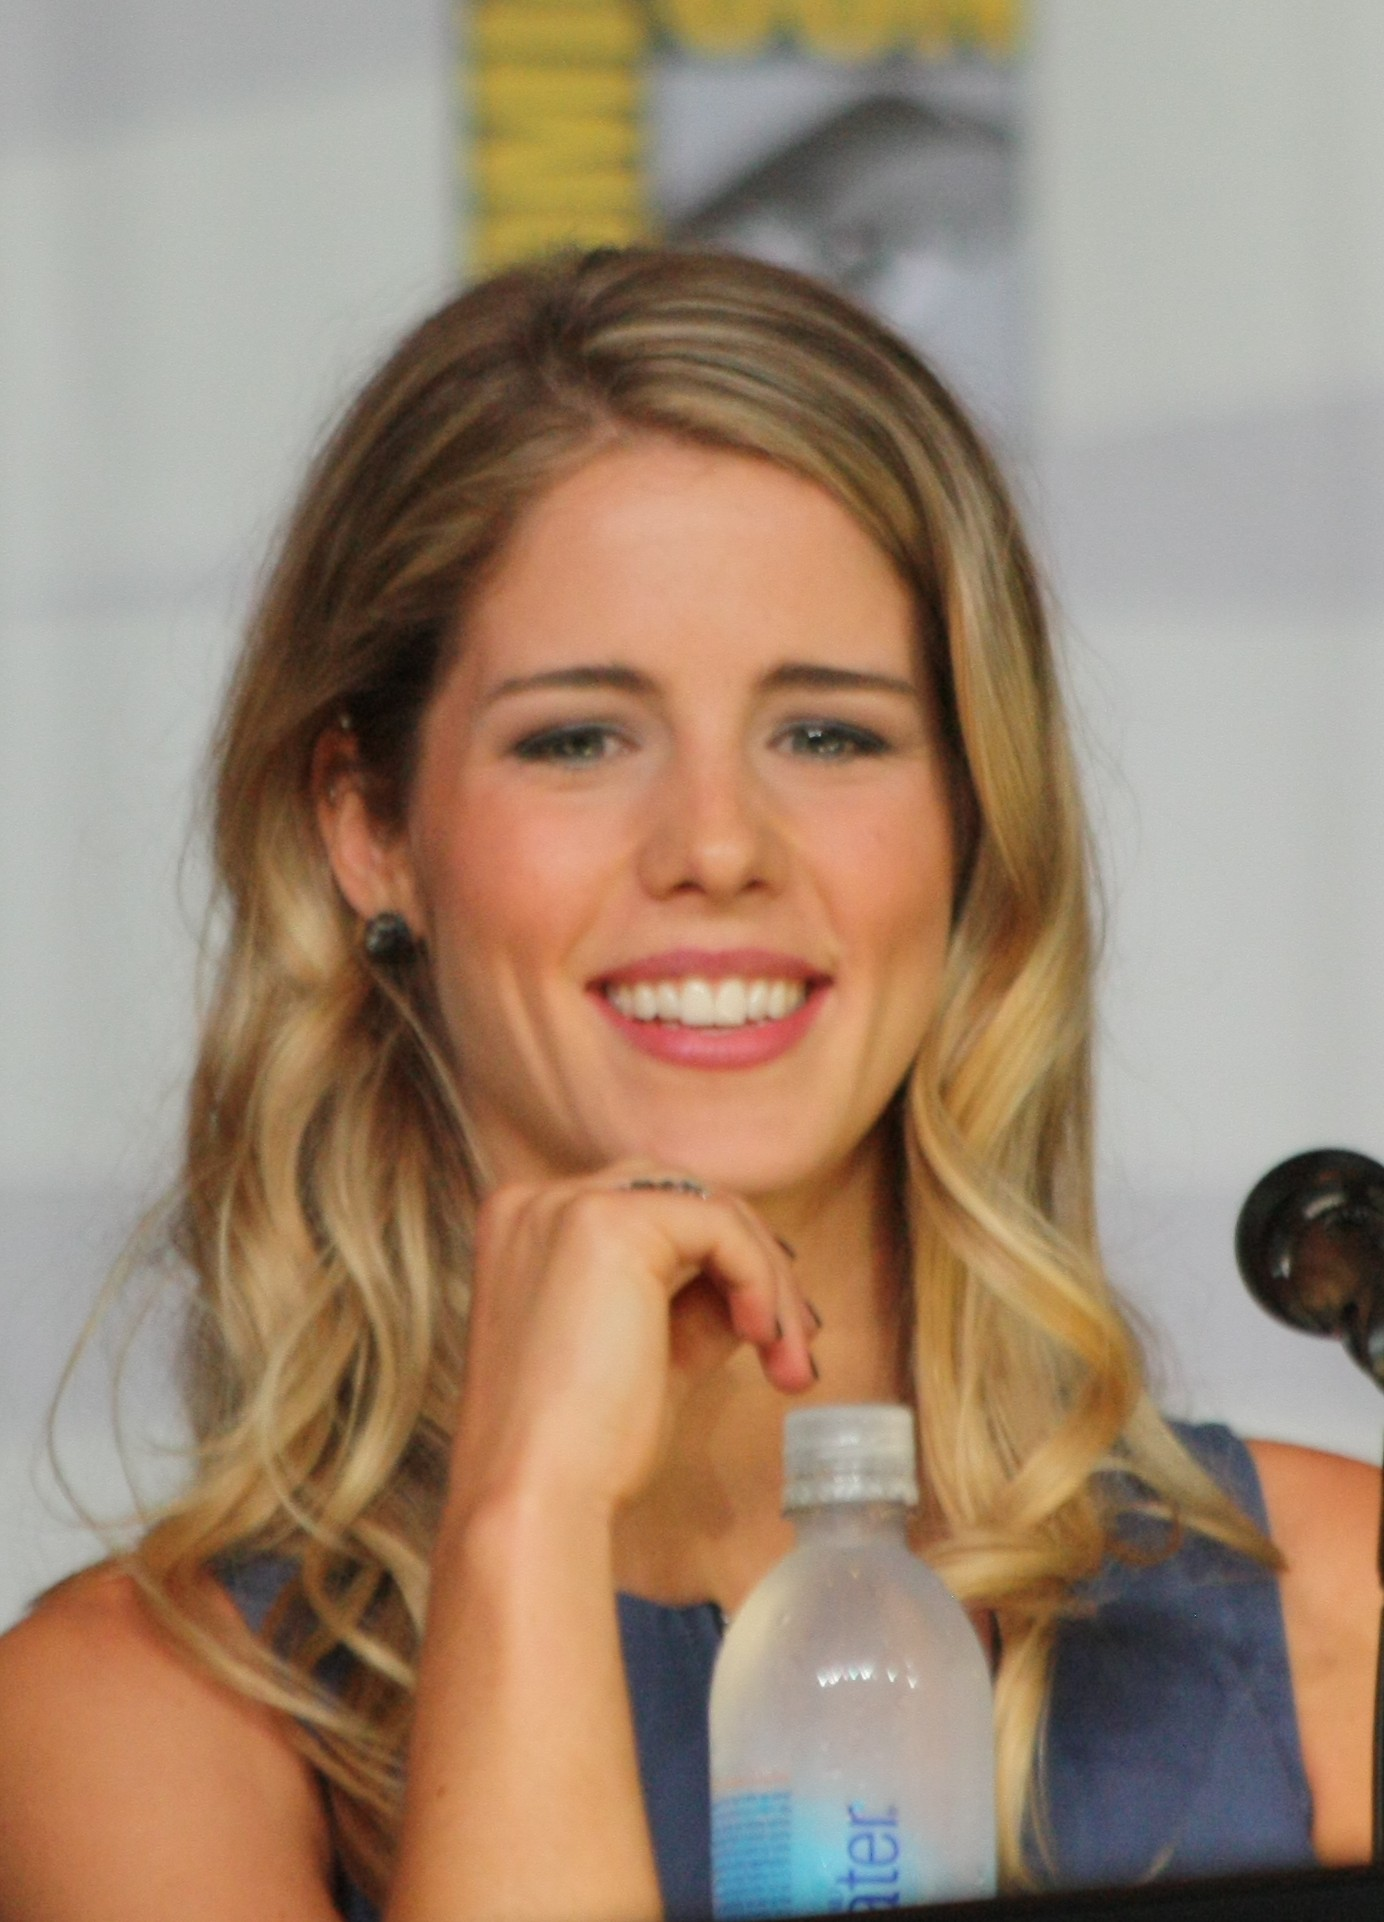 Bett Comic File Emily Bett Rickards At The 2013 Comic Con C Jpg Wikimedia